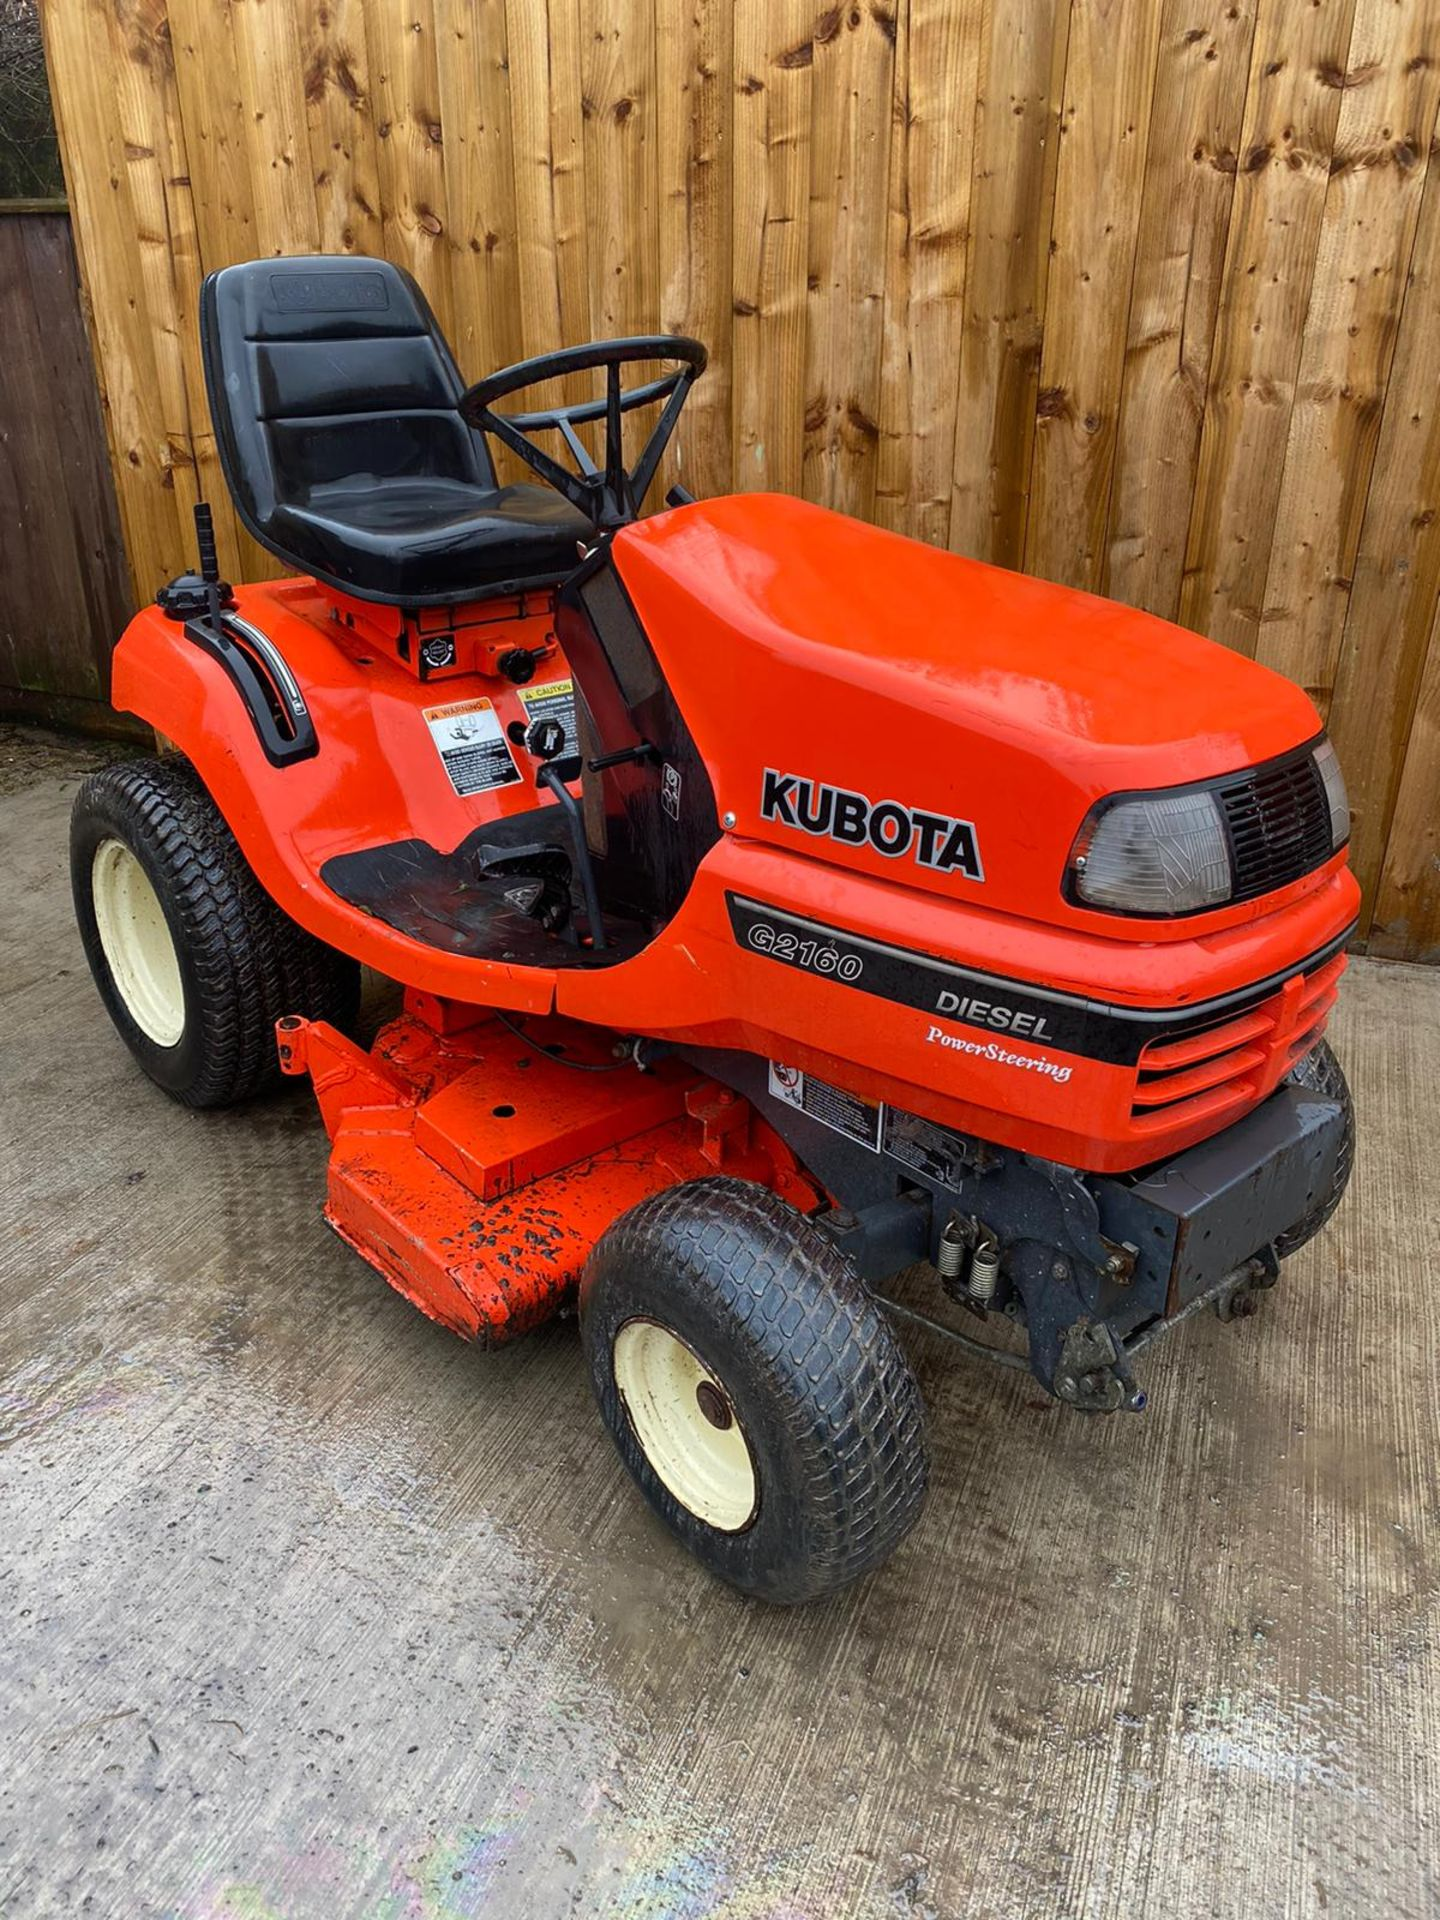 2009 KUBOTA G2160 DIESEL RIDE ON LAWN MOWER, IN EXCELLENT CONDITION *PLUS VAT* - Image 4 of 4